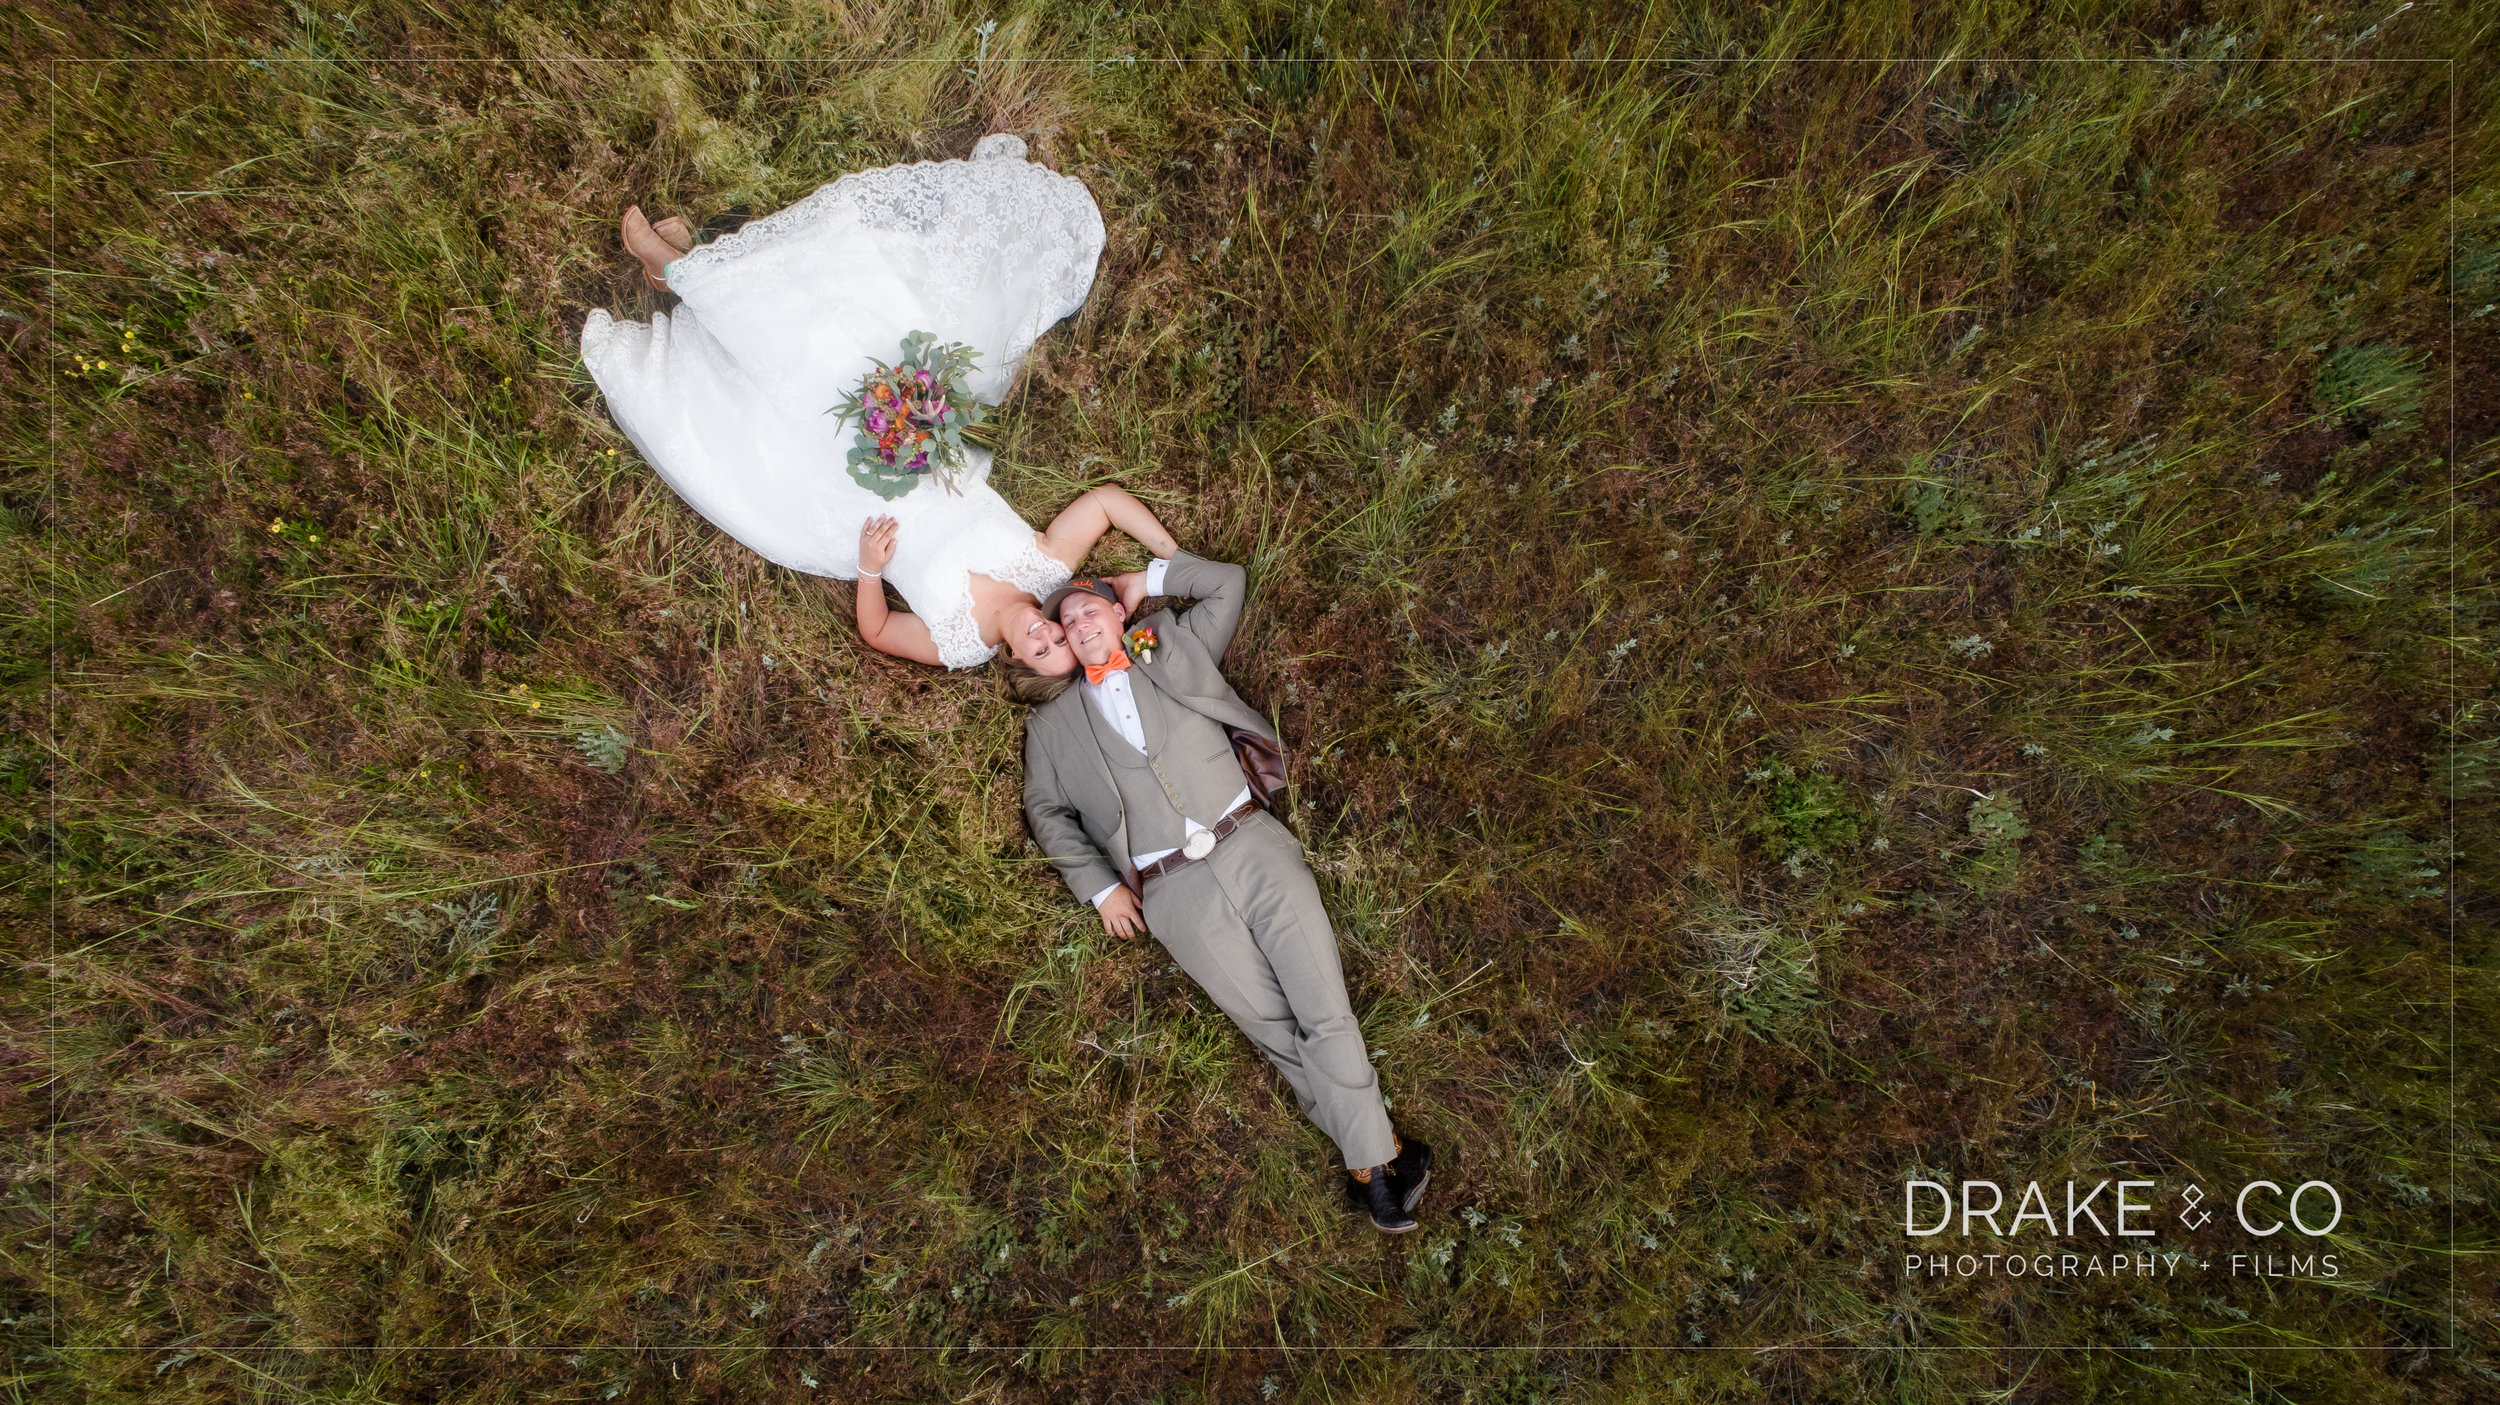 Drone Photography Bride and Groom in grass